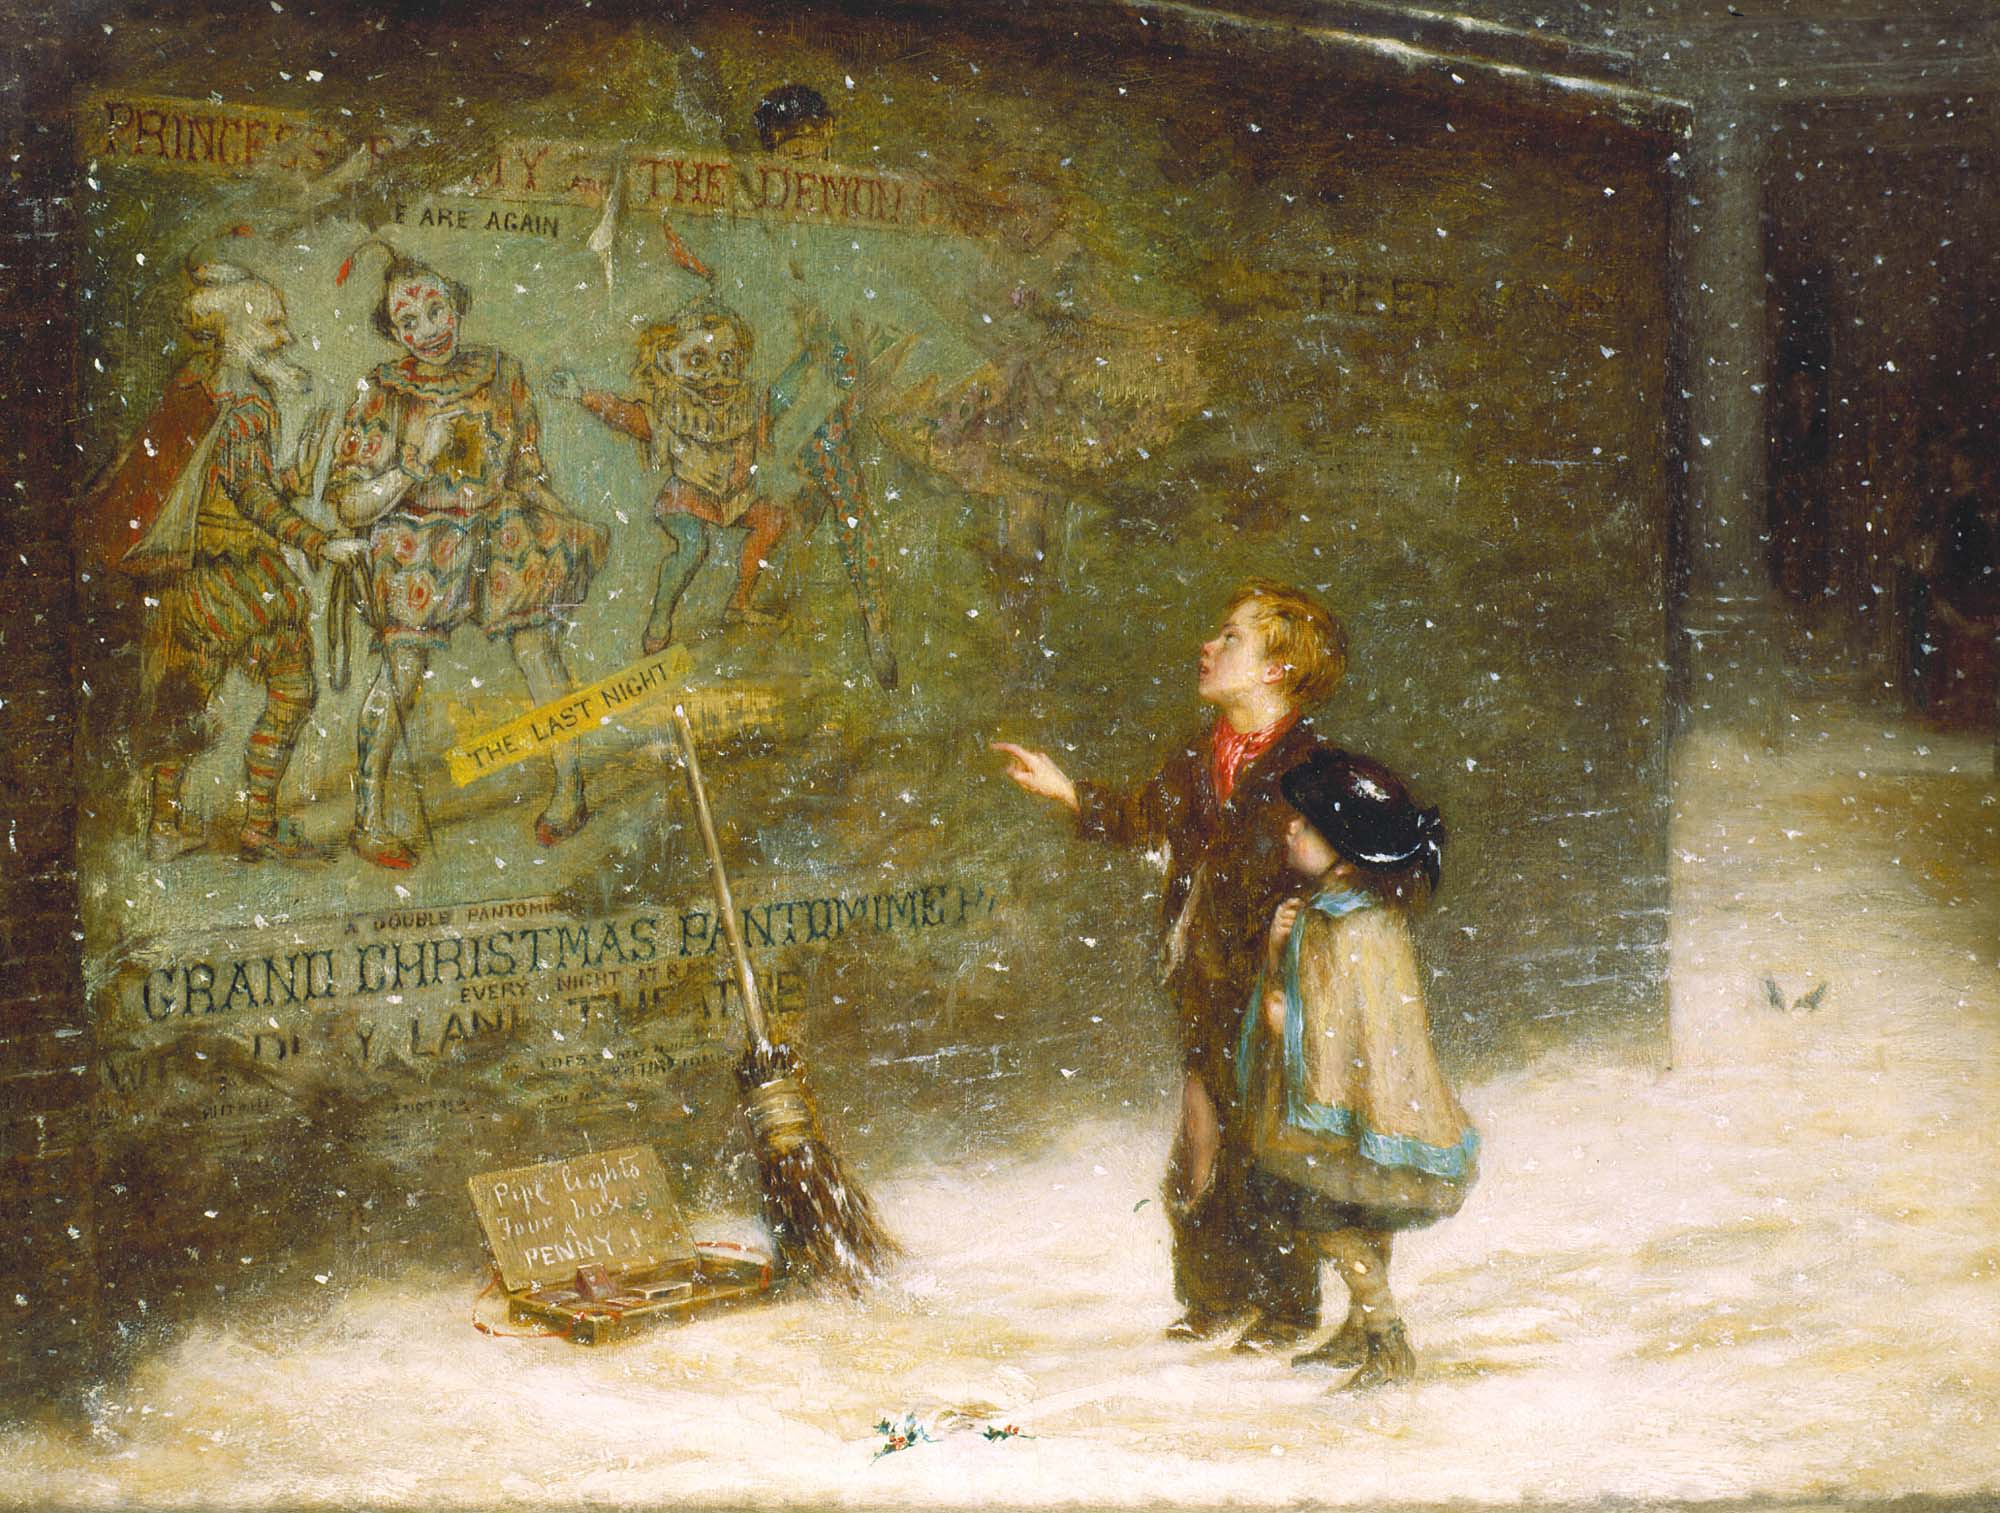 a painting of two young children on a swnowy deserted street staring wistfully at a poster for a pantomime